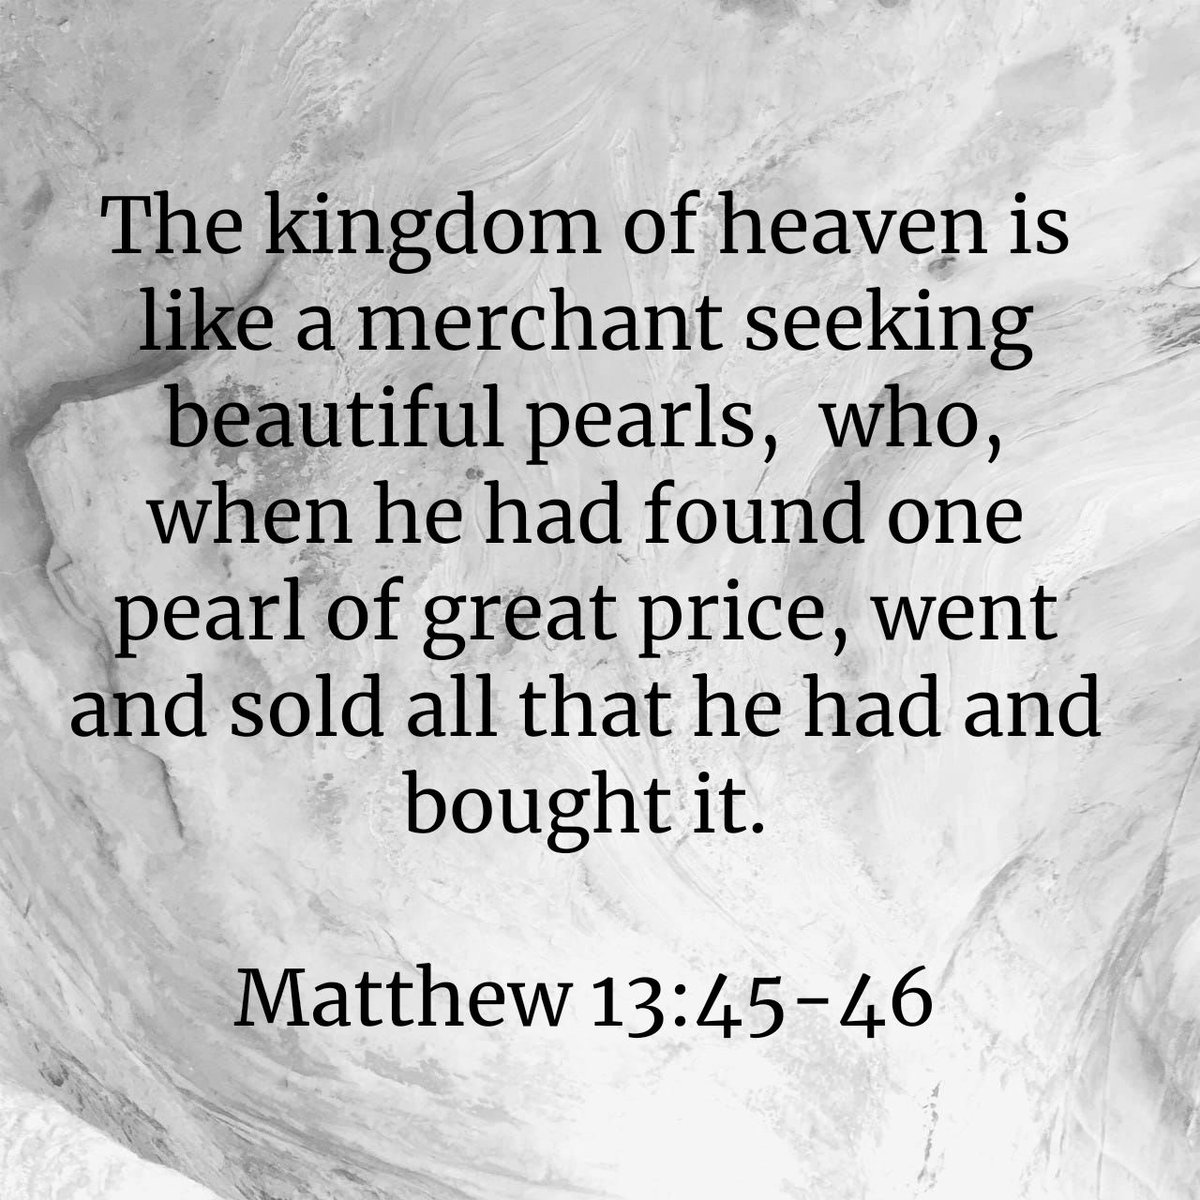 """Again, the kingdom of heaven is like a merchant seeking beautiful pearls,  who, when he had found one pearl of great price, went and sold all that he had and bought it. Matthew 13:45-46 NKJV  https://t.co/Y80zaLYuxq https://t.co/mkLkWCJKYj"